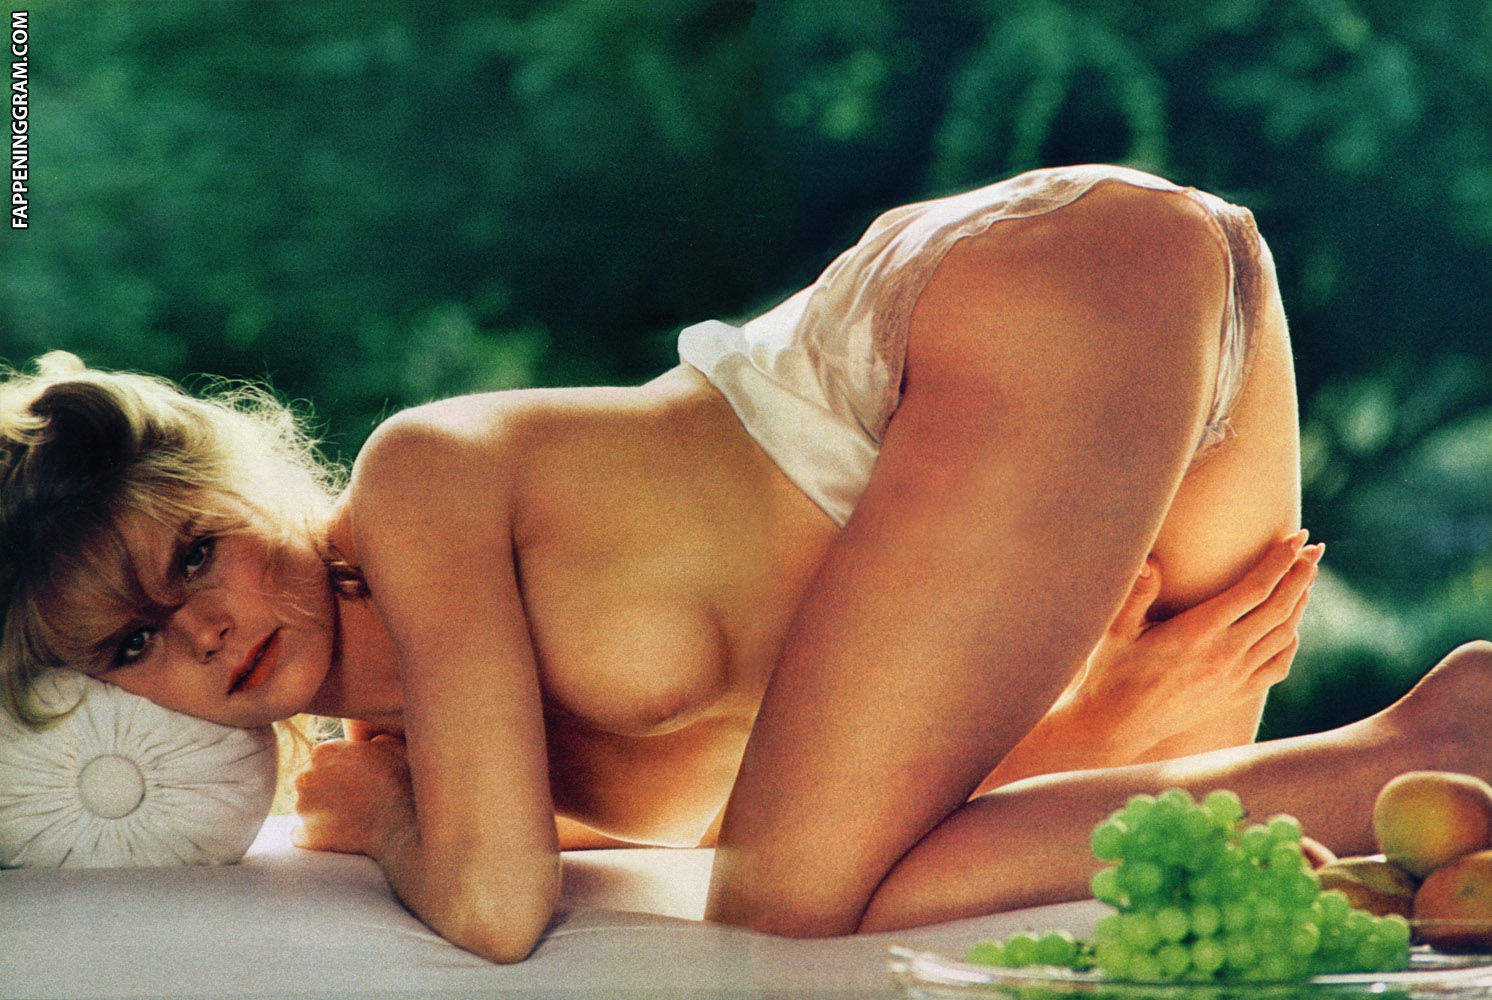 Mariel hemingway naked on bed with another girl